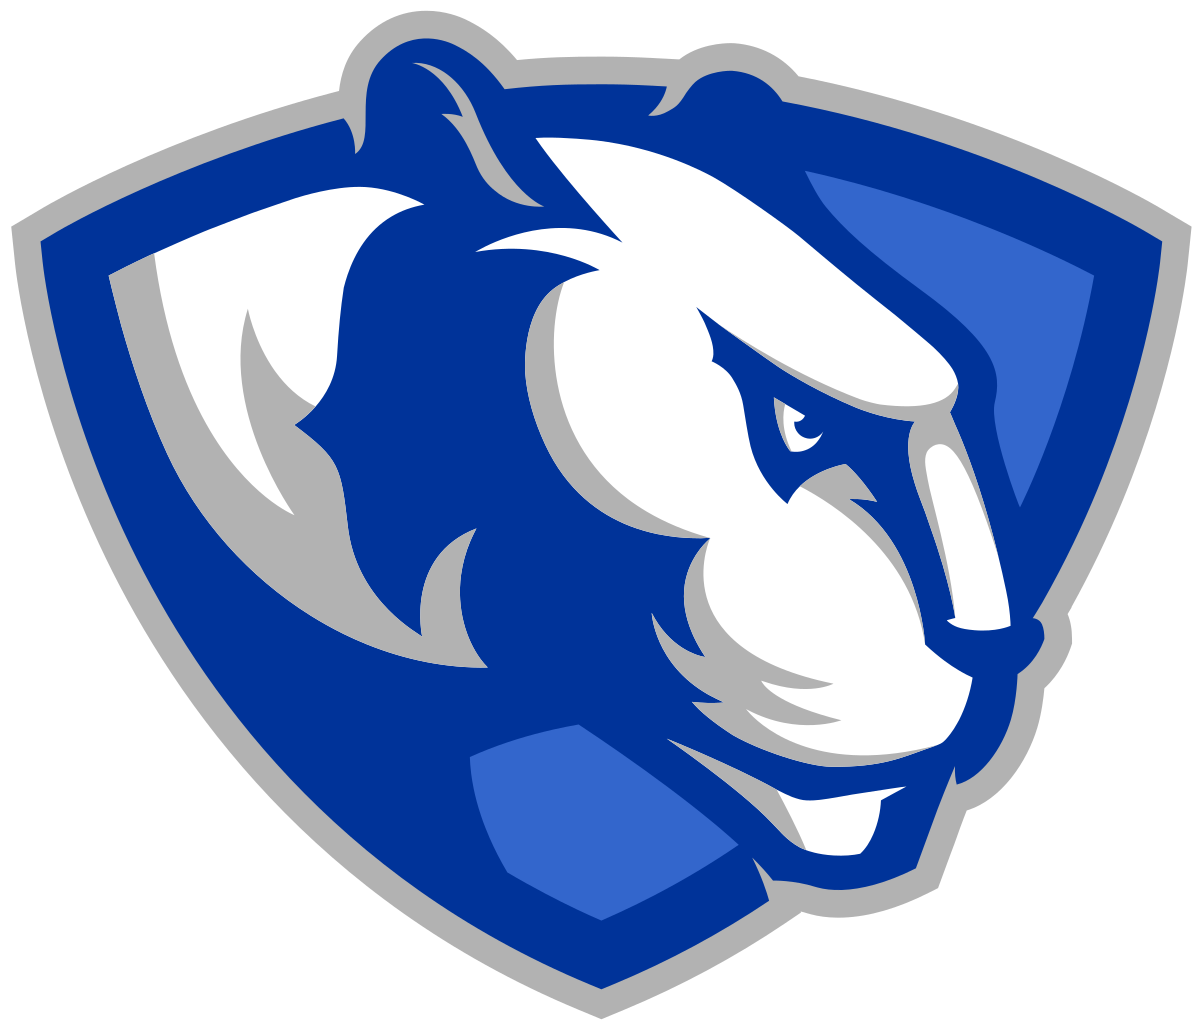 Prairie view a & m panther vector png. Eastern illinois panthers wikipedia